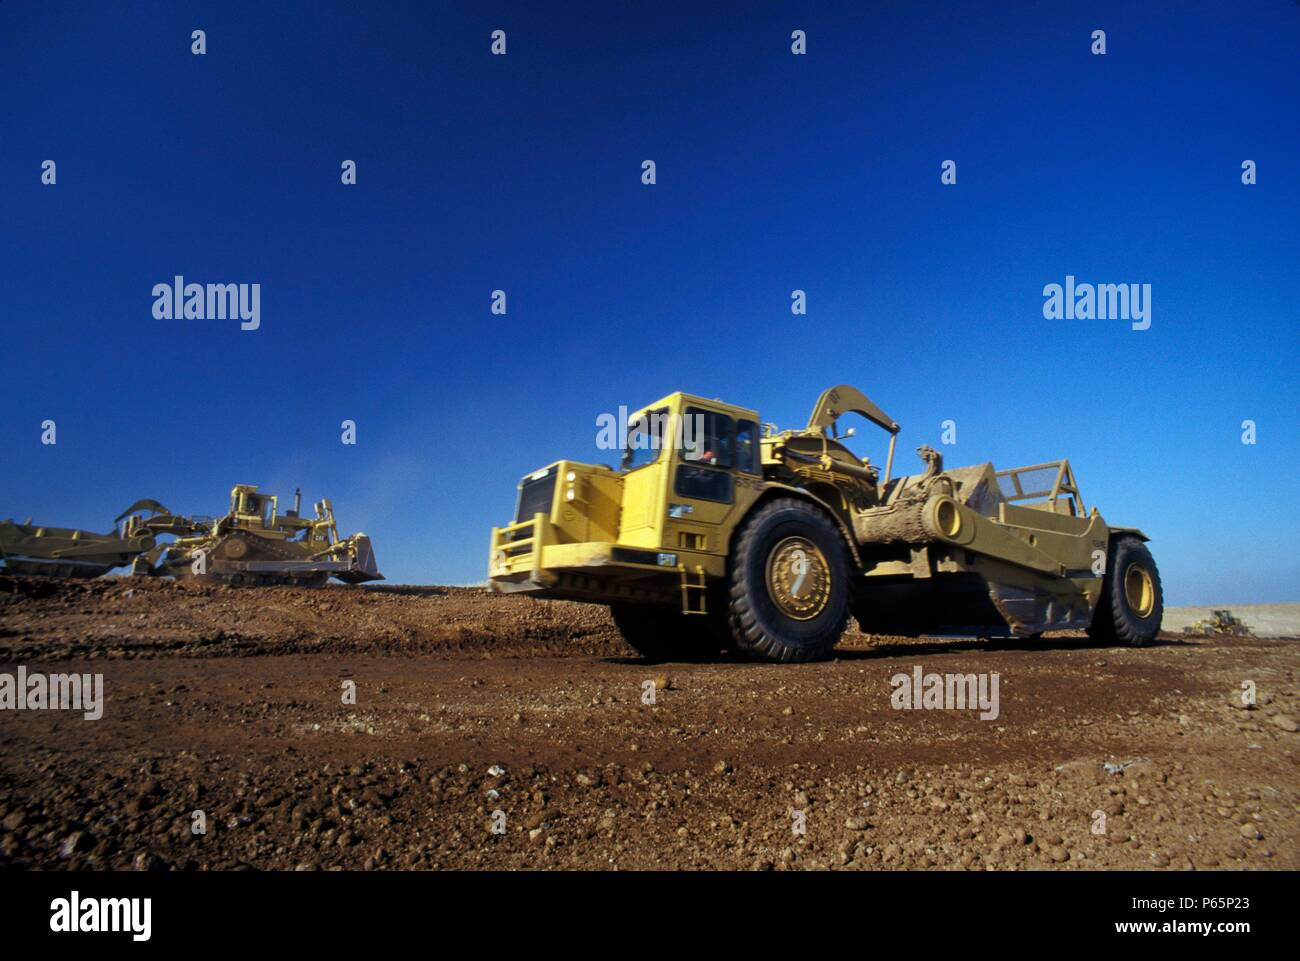 Scrapers and bulldozer working on road building for large California housing project, USA Stock Photo